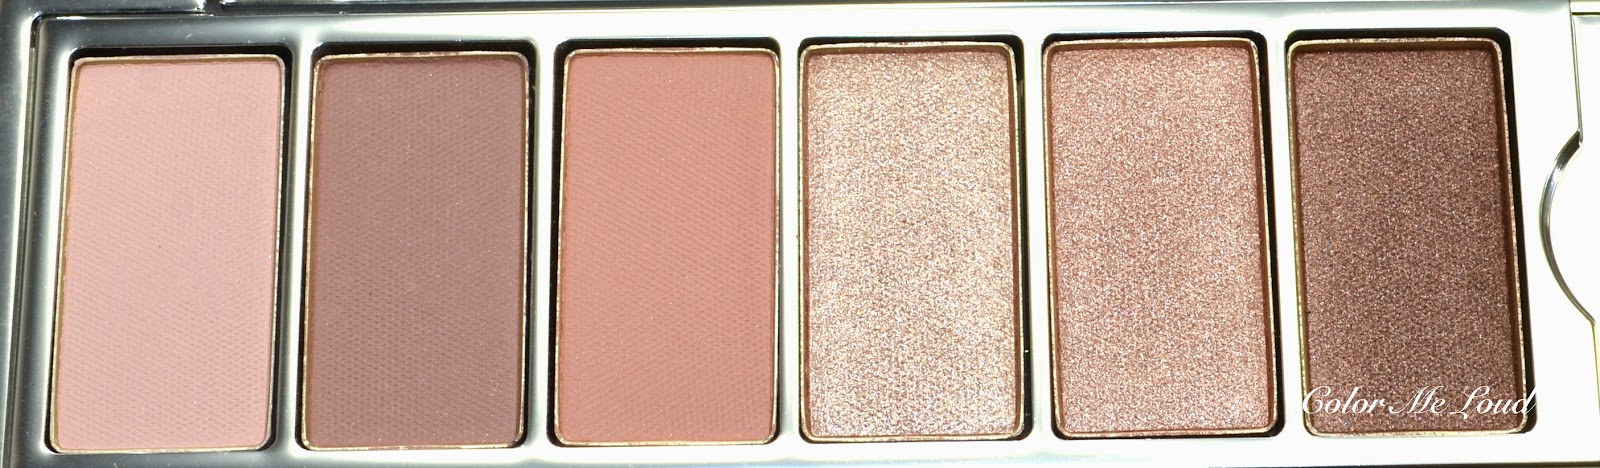 Close-up of Neutrals from Lancôme My Paris Eye Shadow Palette